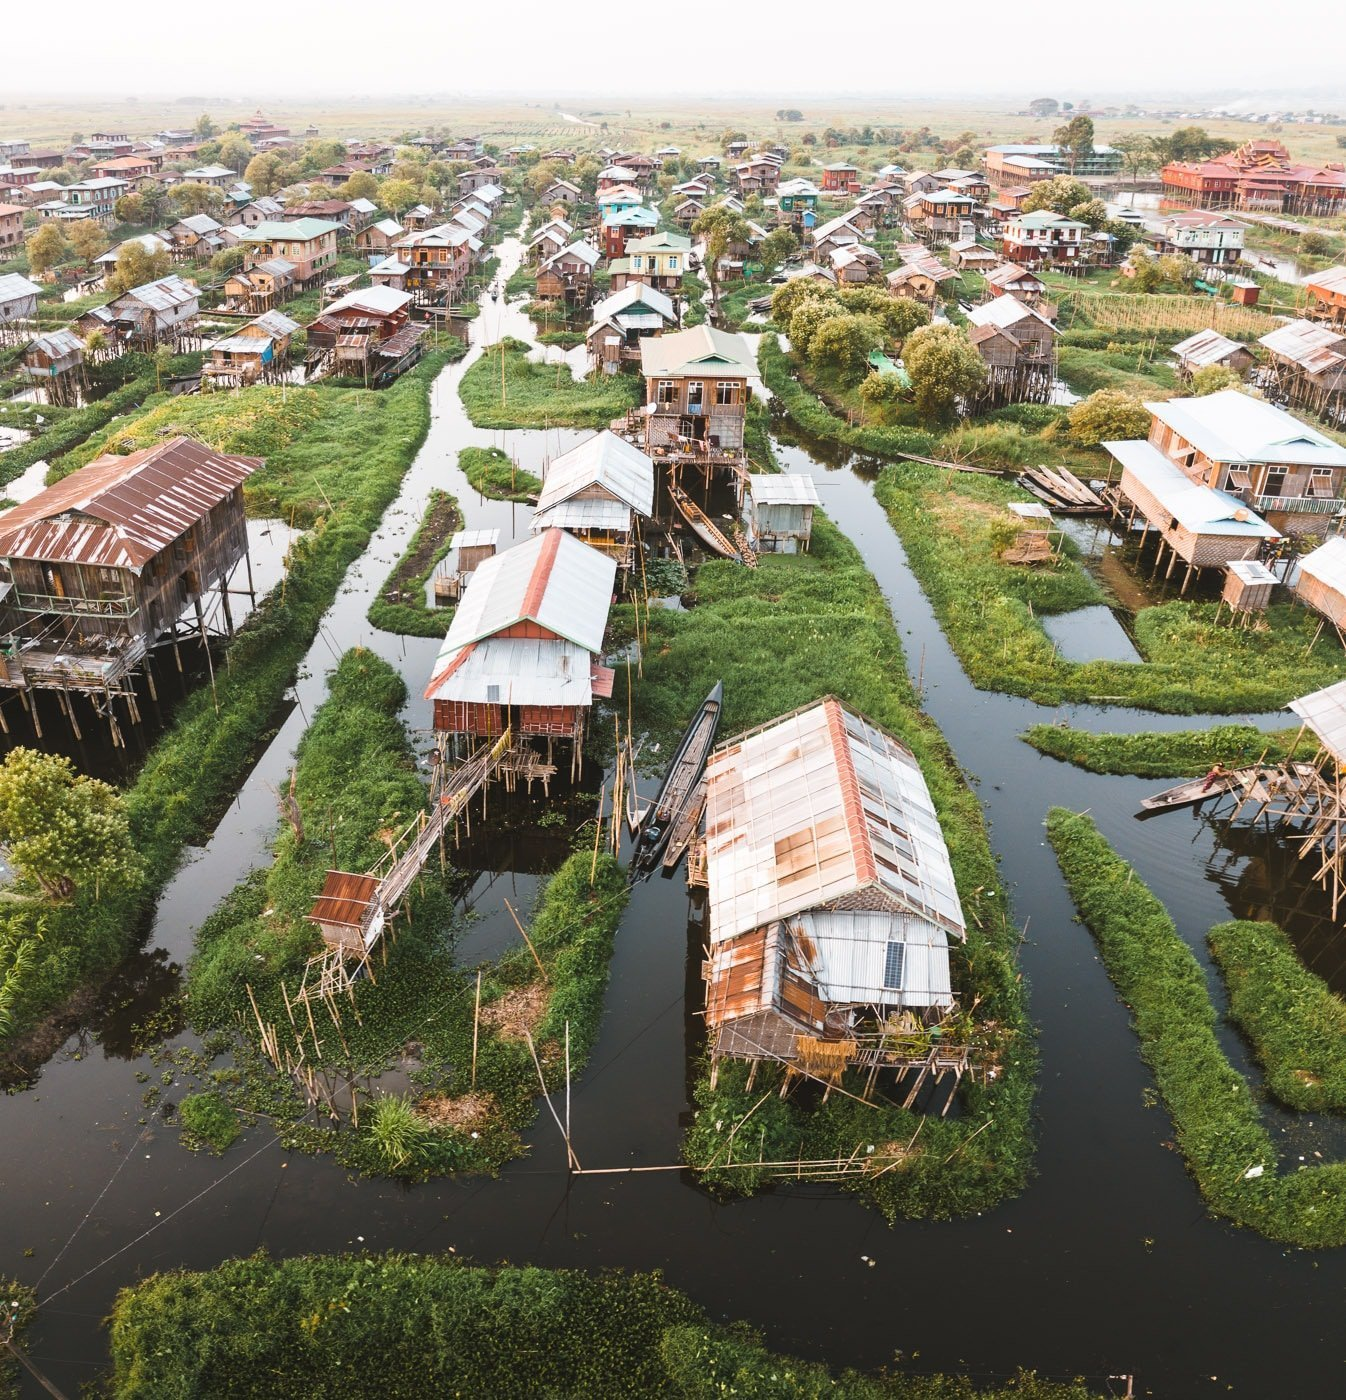 INLE LAKE BOAT TRIP, BAMBOO STILTED HOUSE COMMUNITY